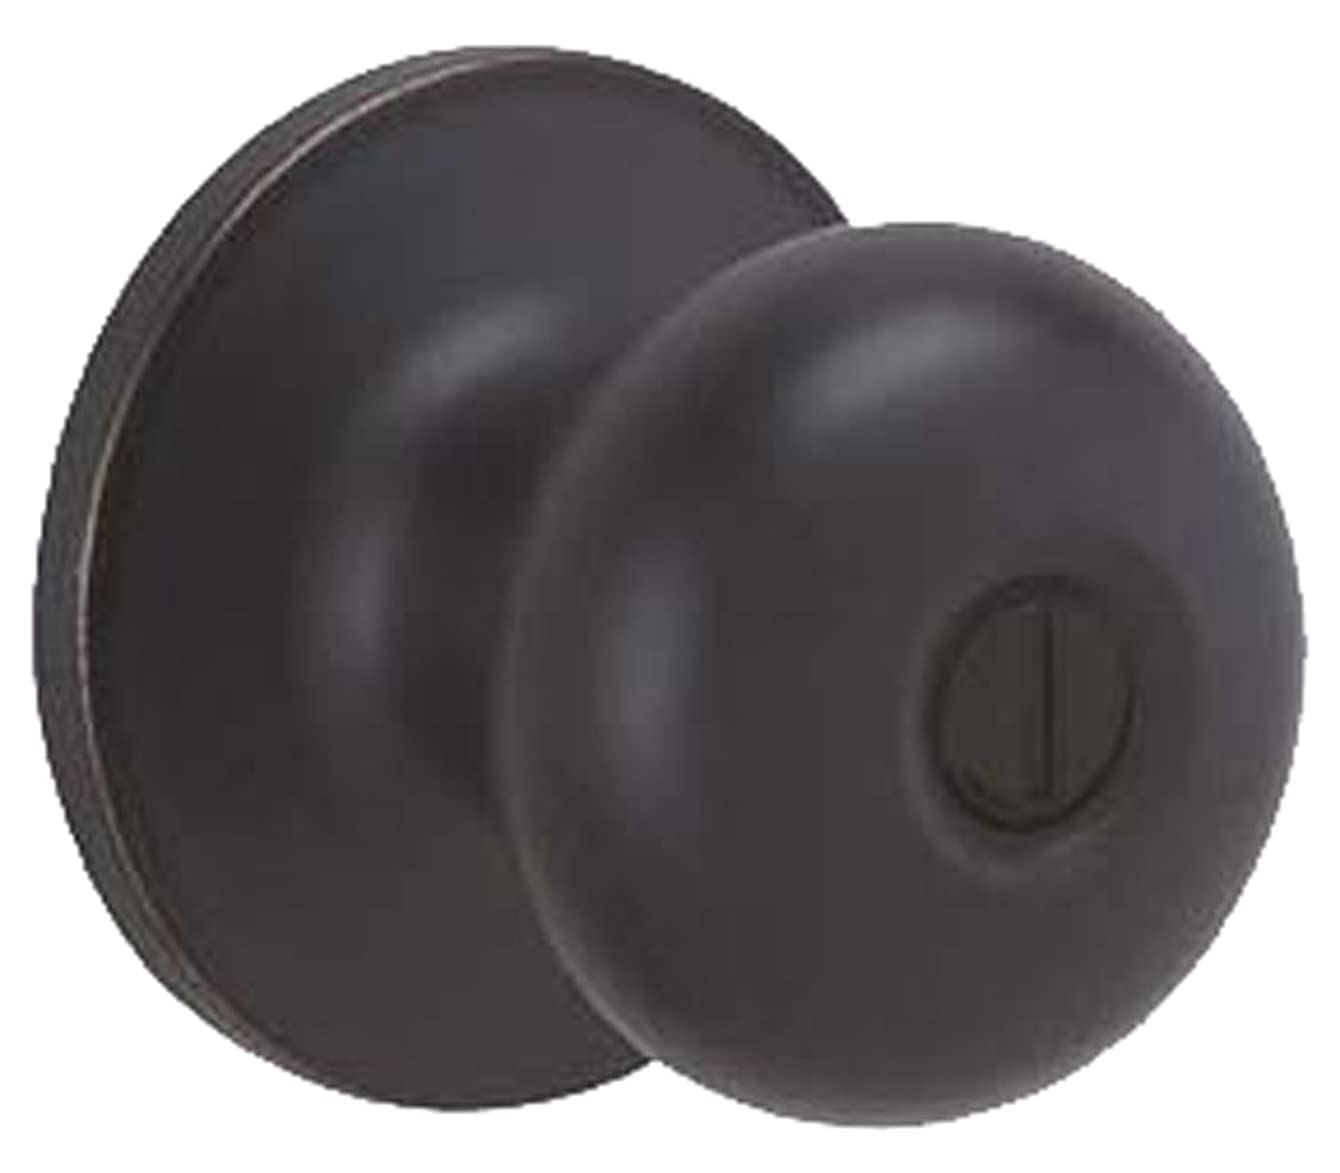 Dexter by Schlage J40STR716 Stratus Bed and Bath Knob, Aged Bronze